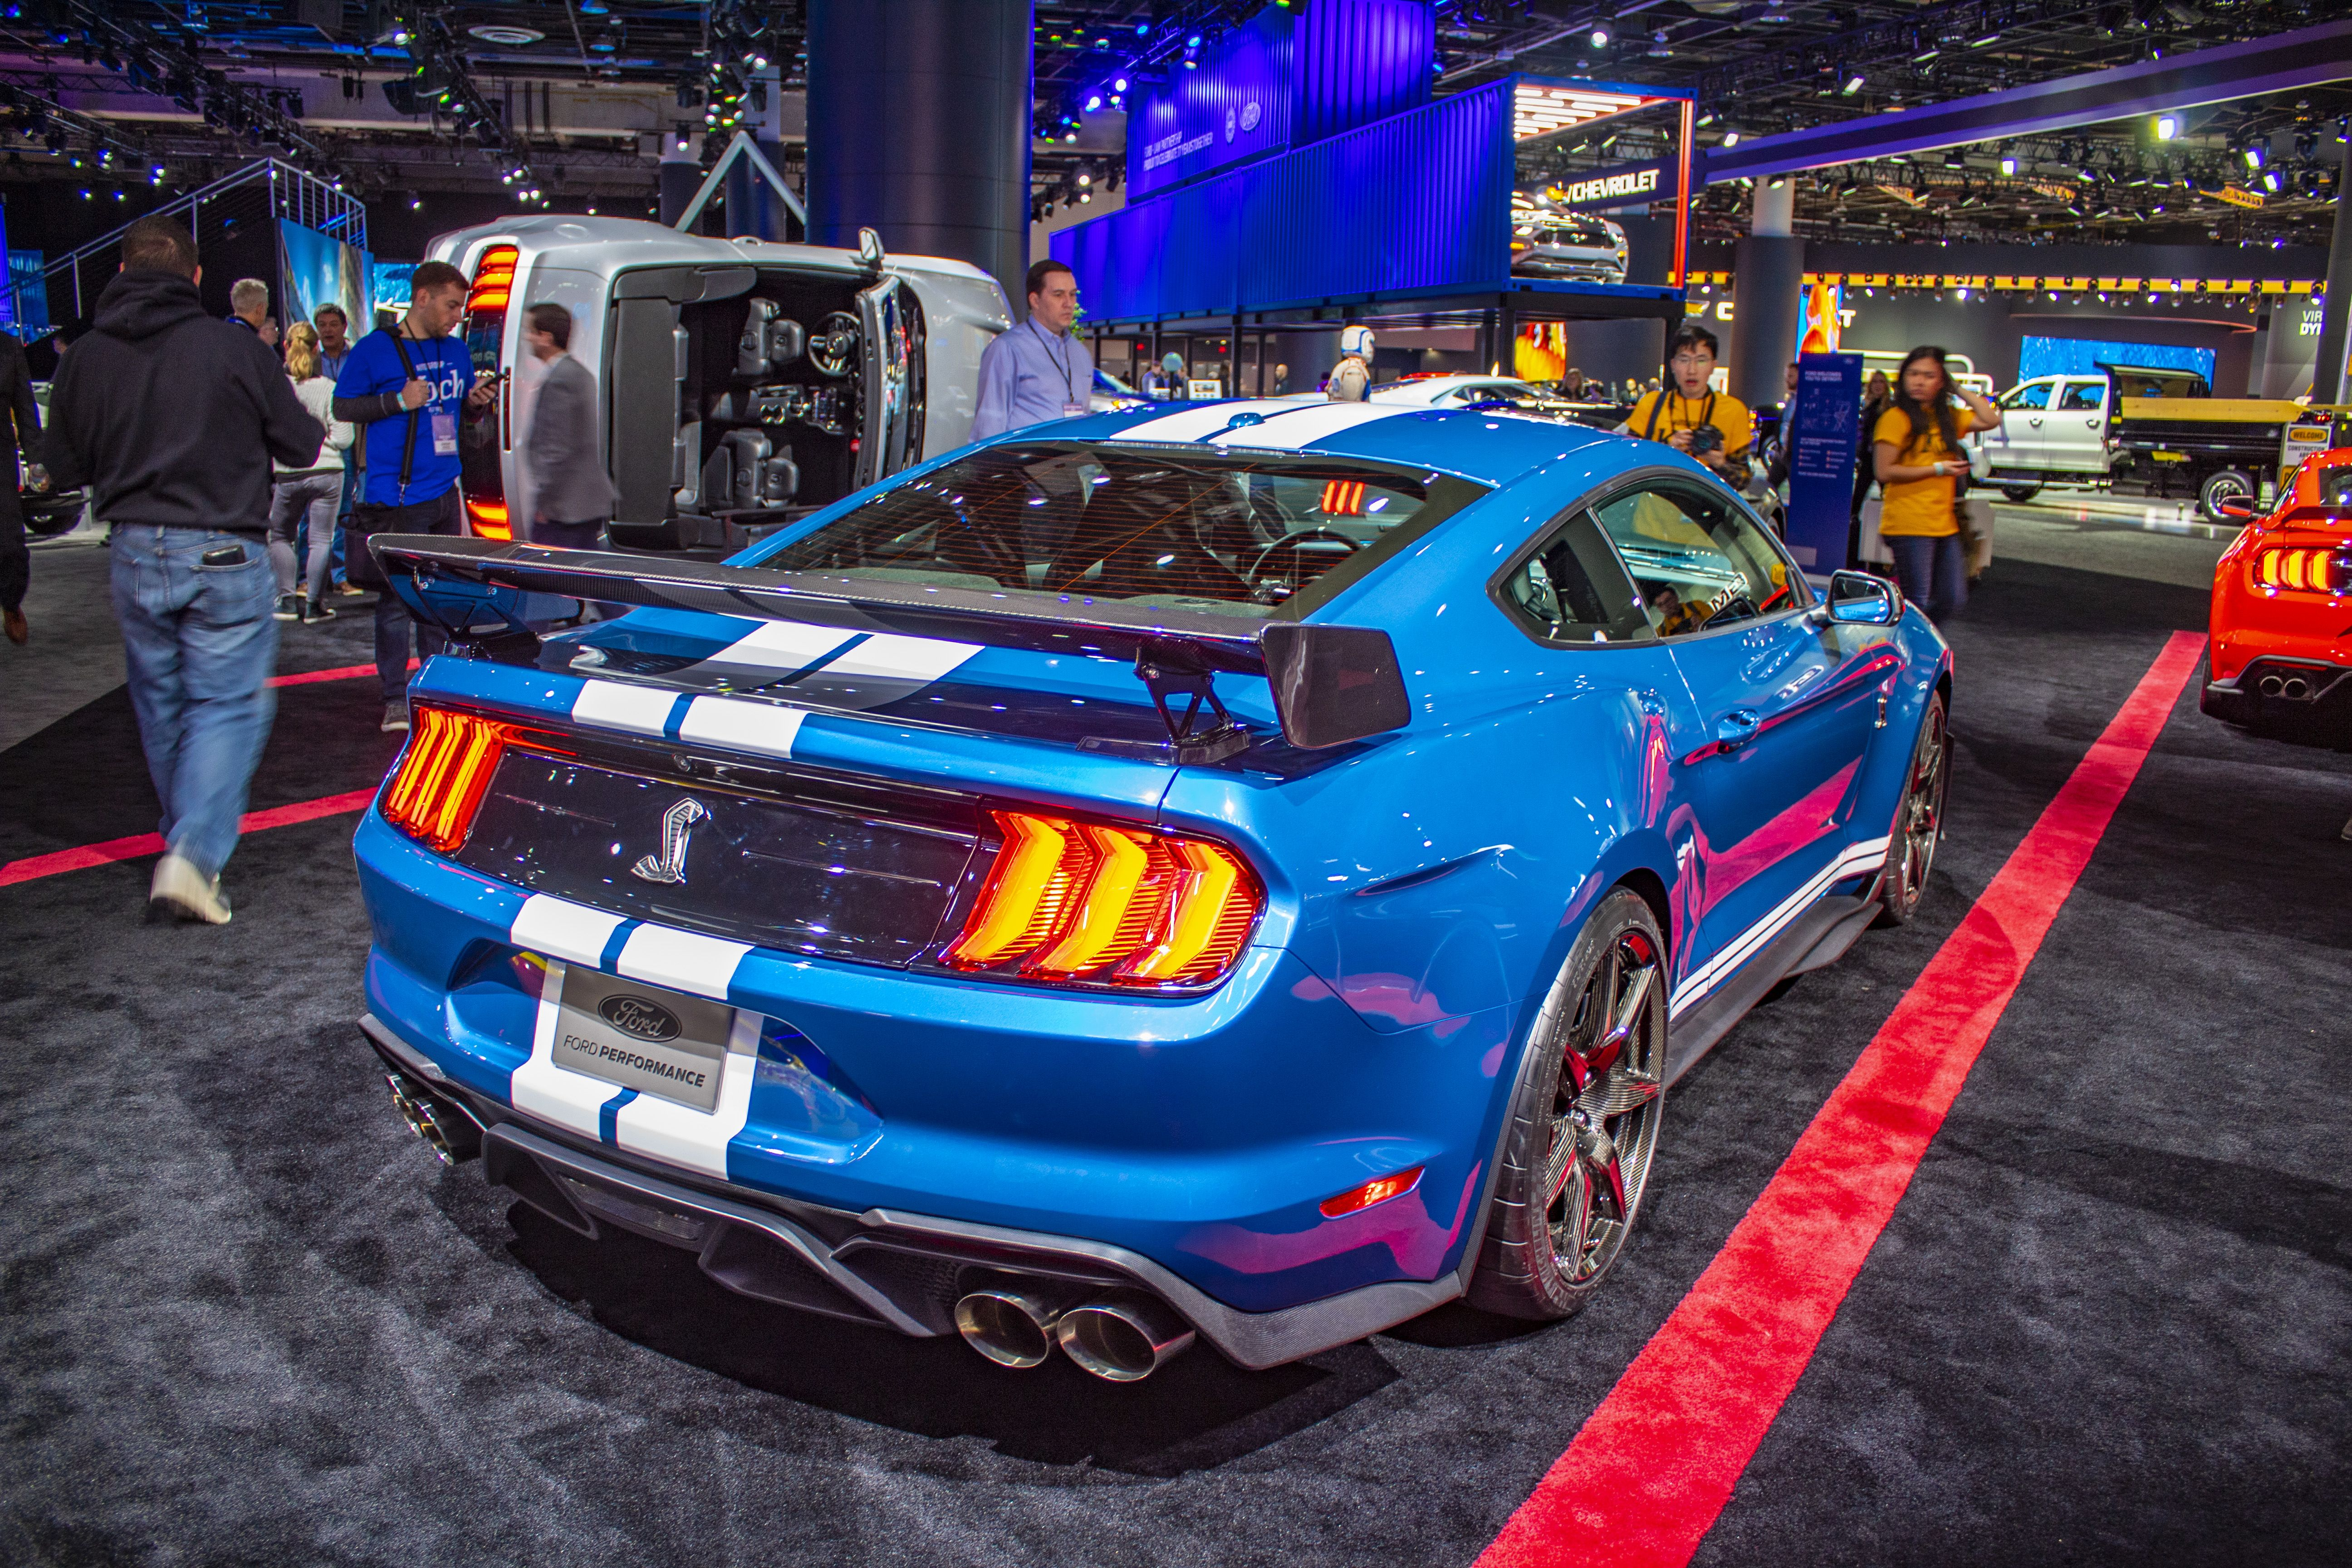 The 2020 Shelby Gt500 Packs More Power Than The Ferrari F8 Tributo